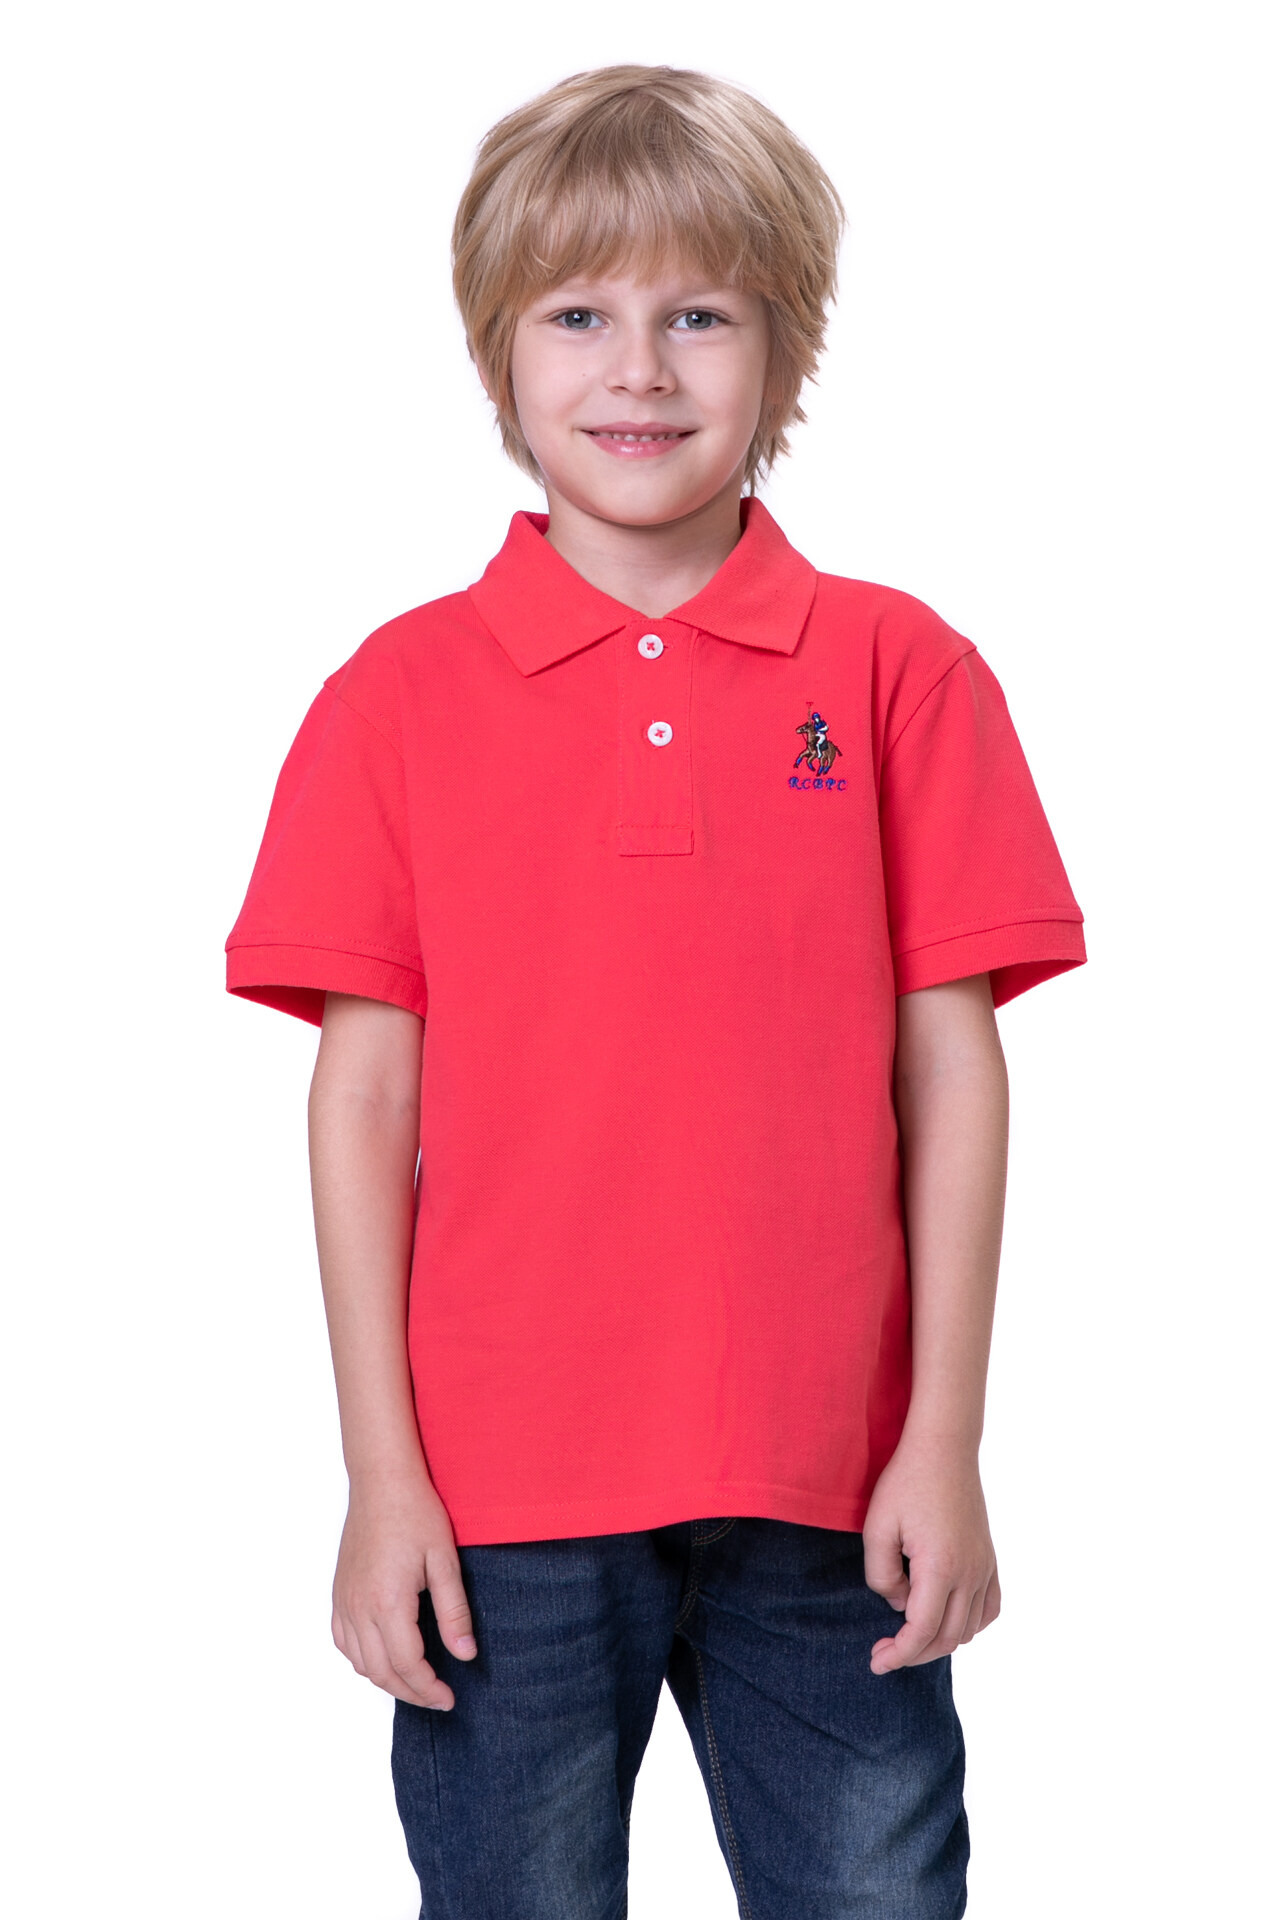 RCB POLO CLUB KIDS POLO TEE SOLIDRBTS10681